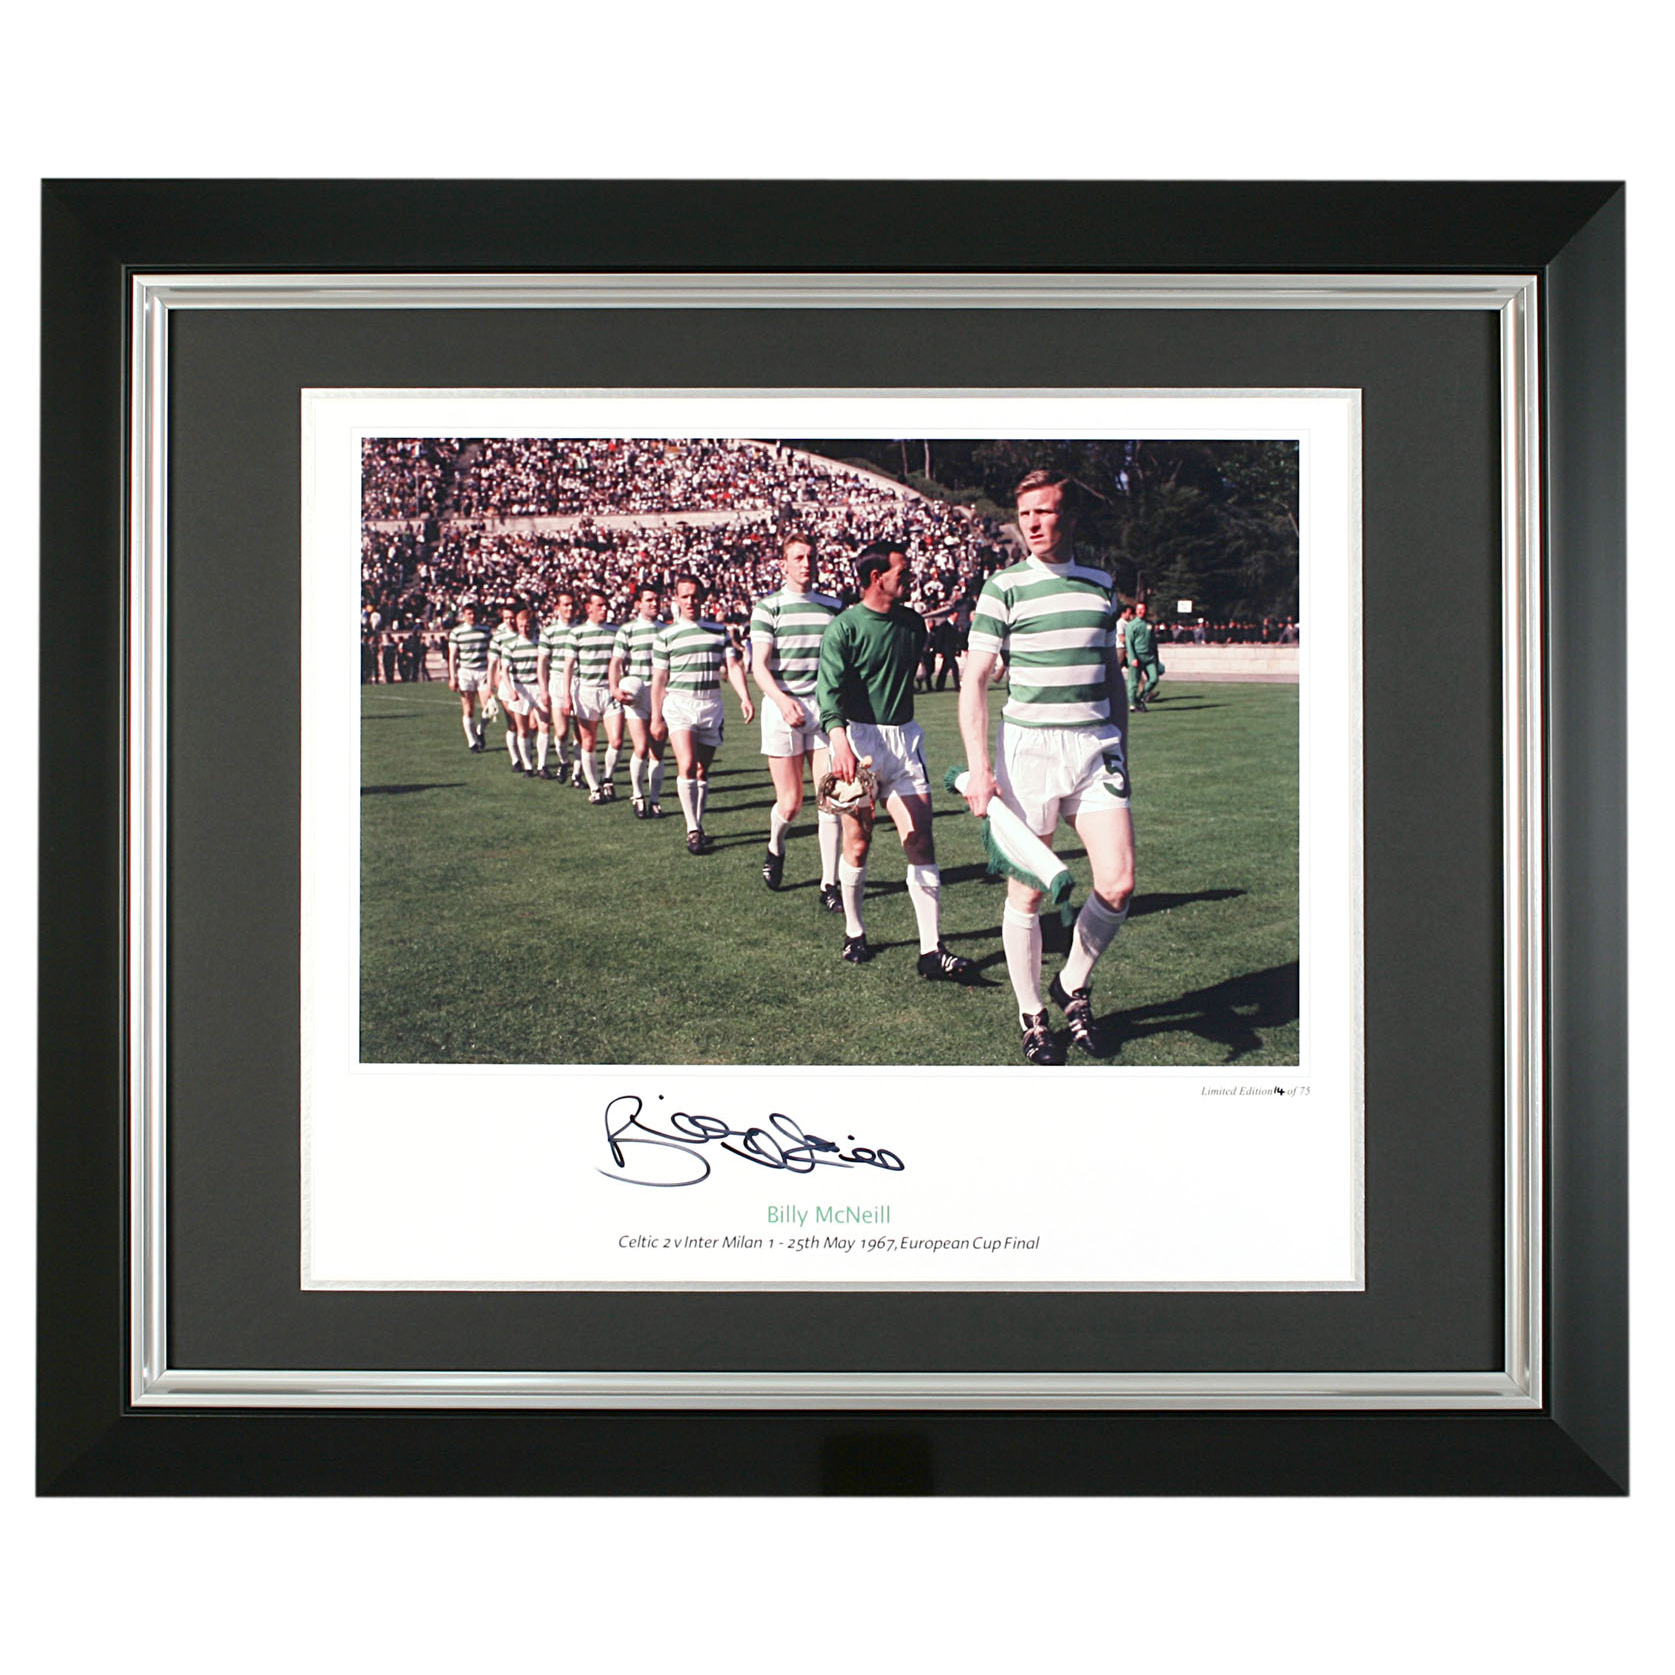 Billy McNeill Signed Print - 20 x 16 Inch